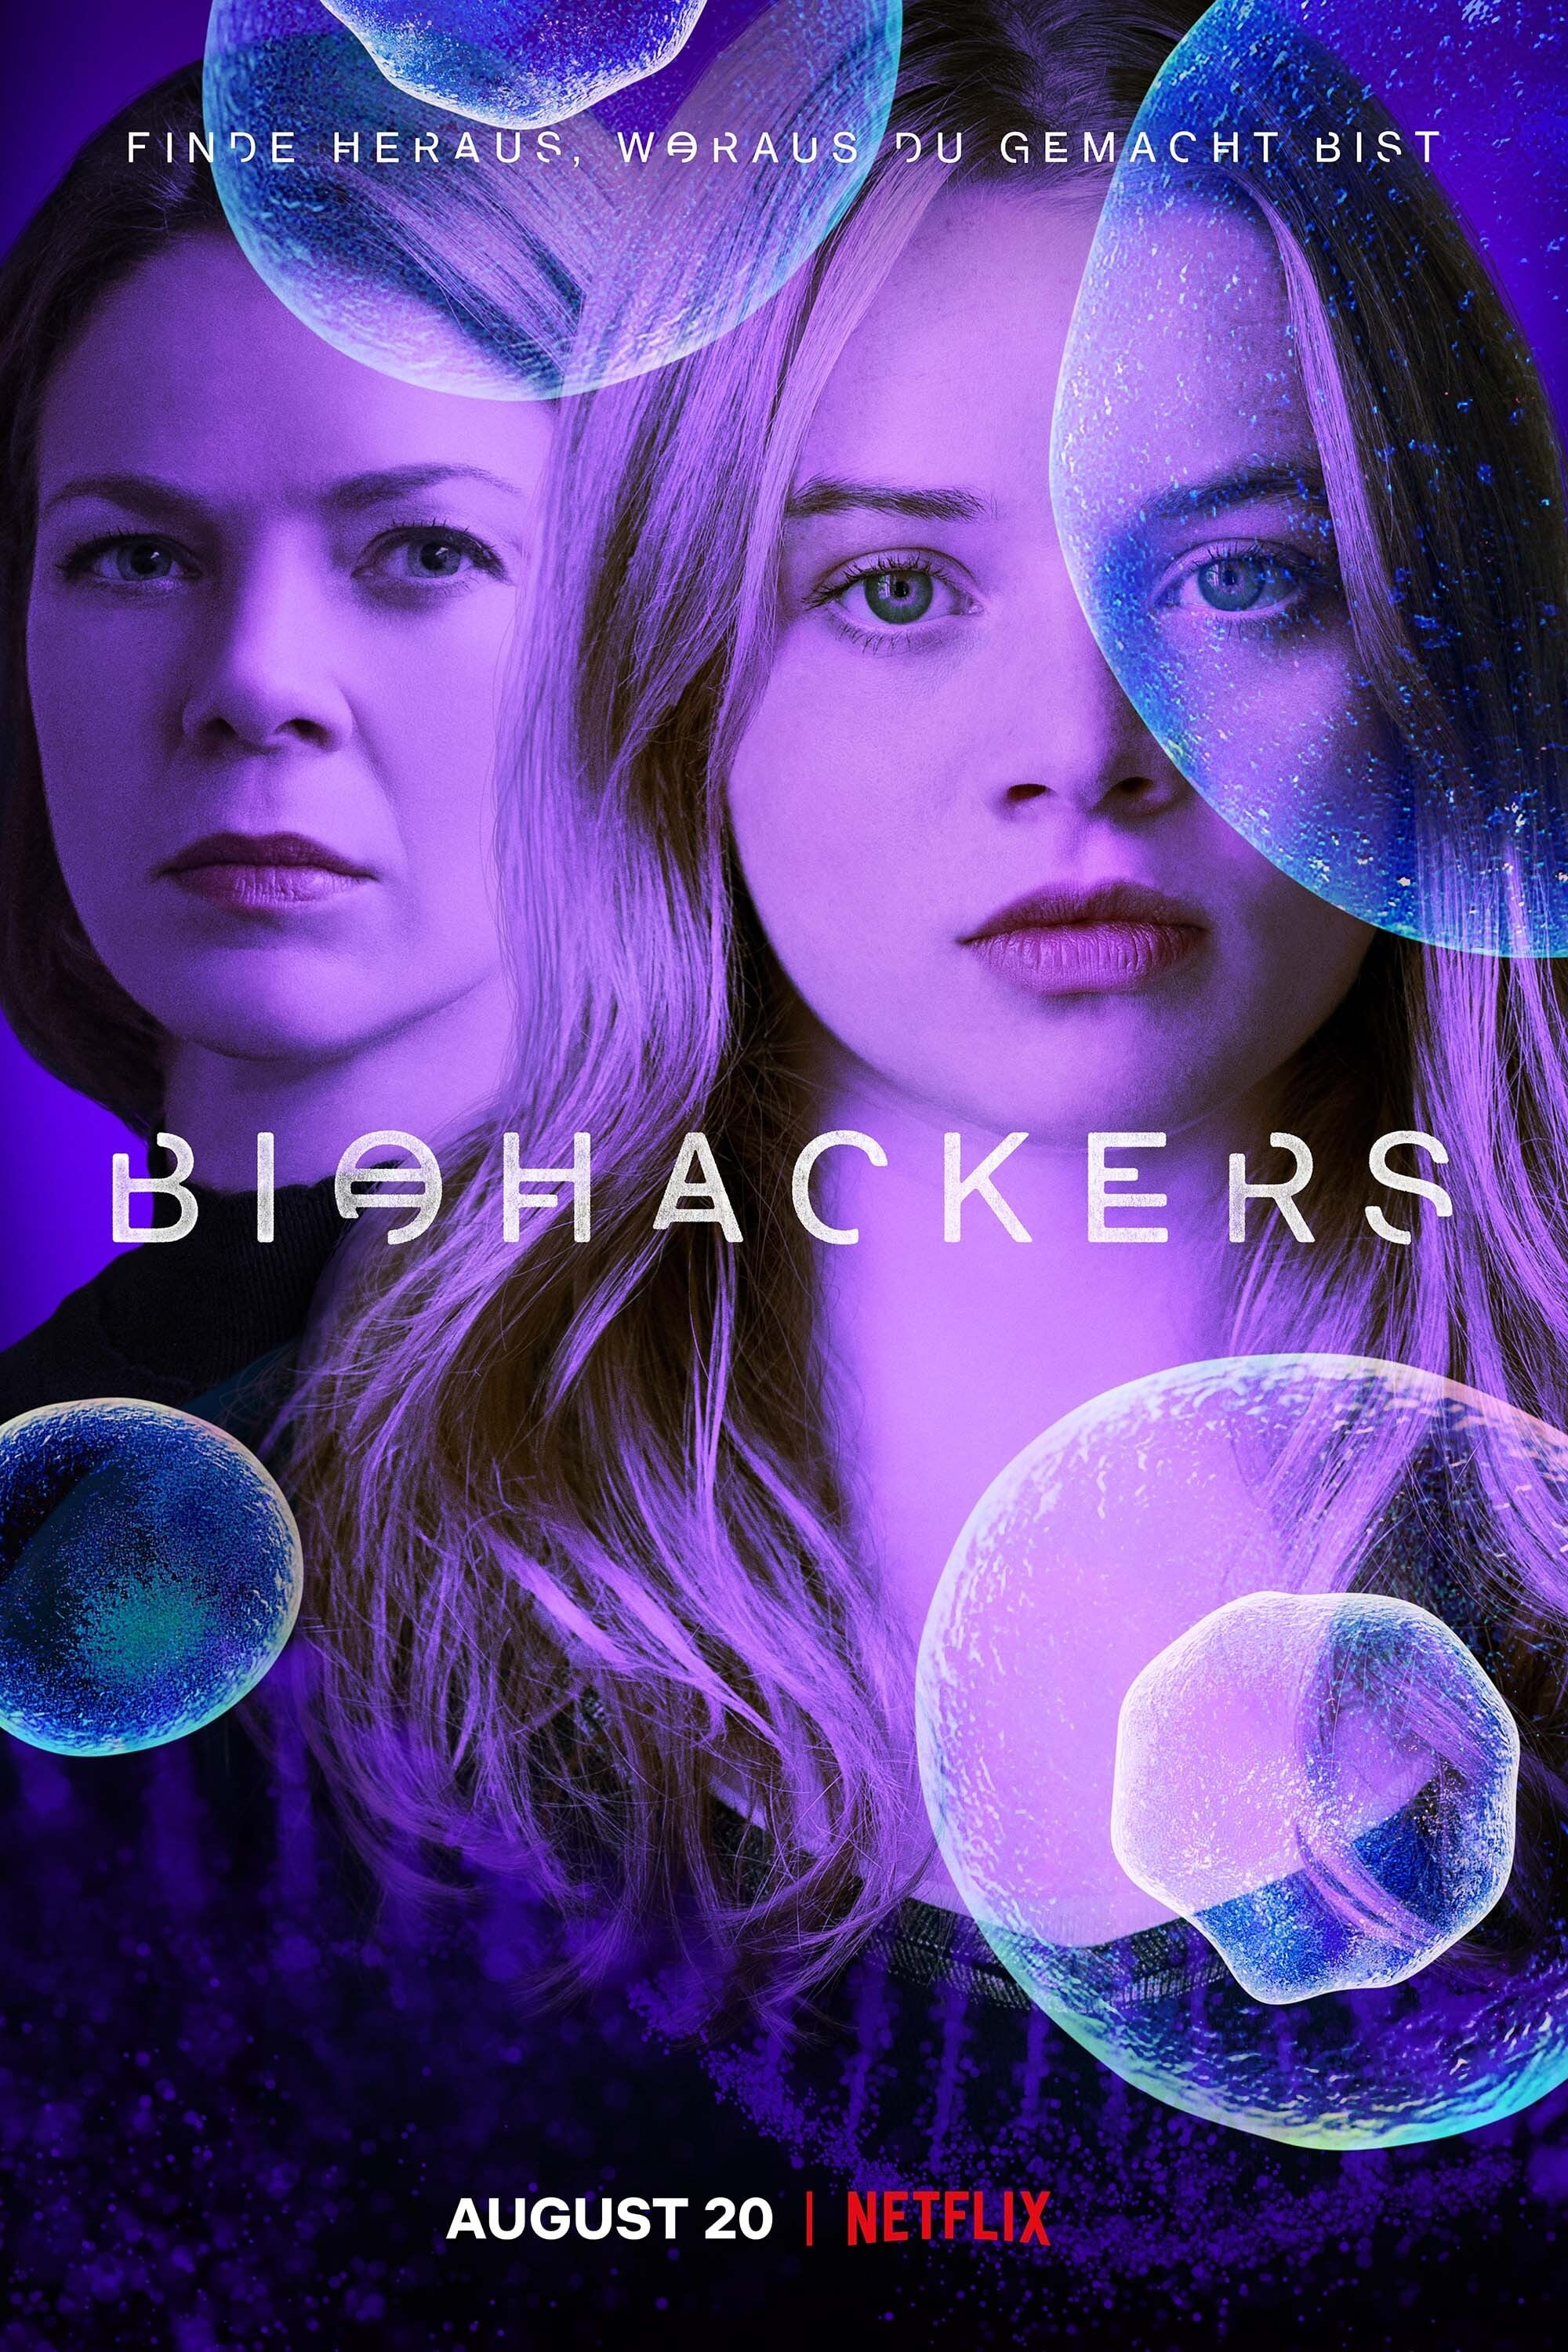 Biohackers (2020) S01 1080p NF WEB-DL DDP5.1 x264-Telly [16.4 GB] | G-Drive